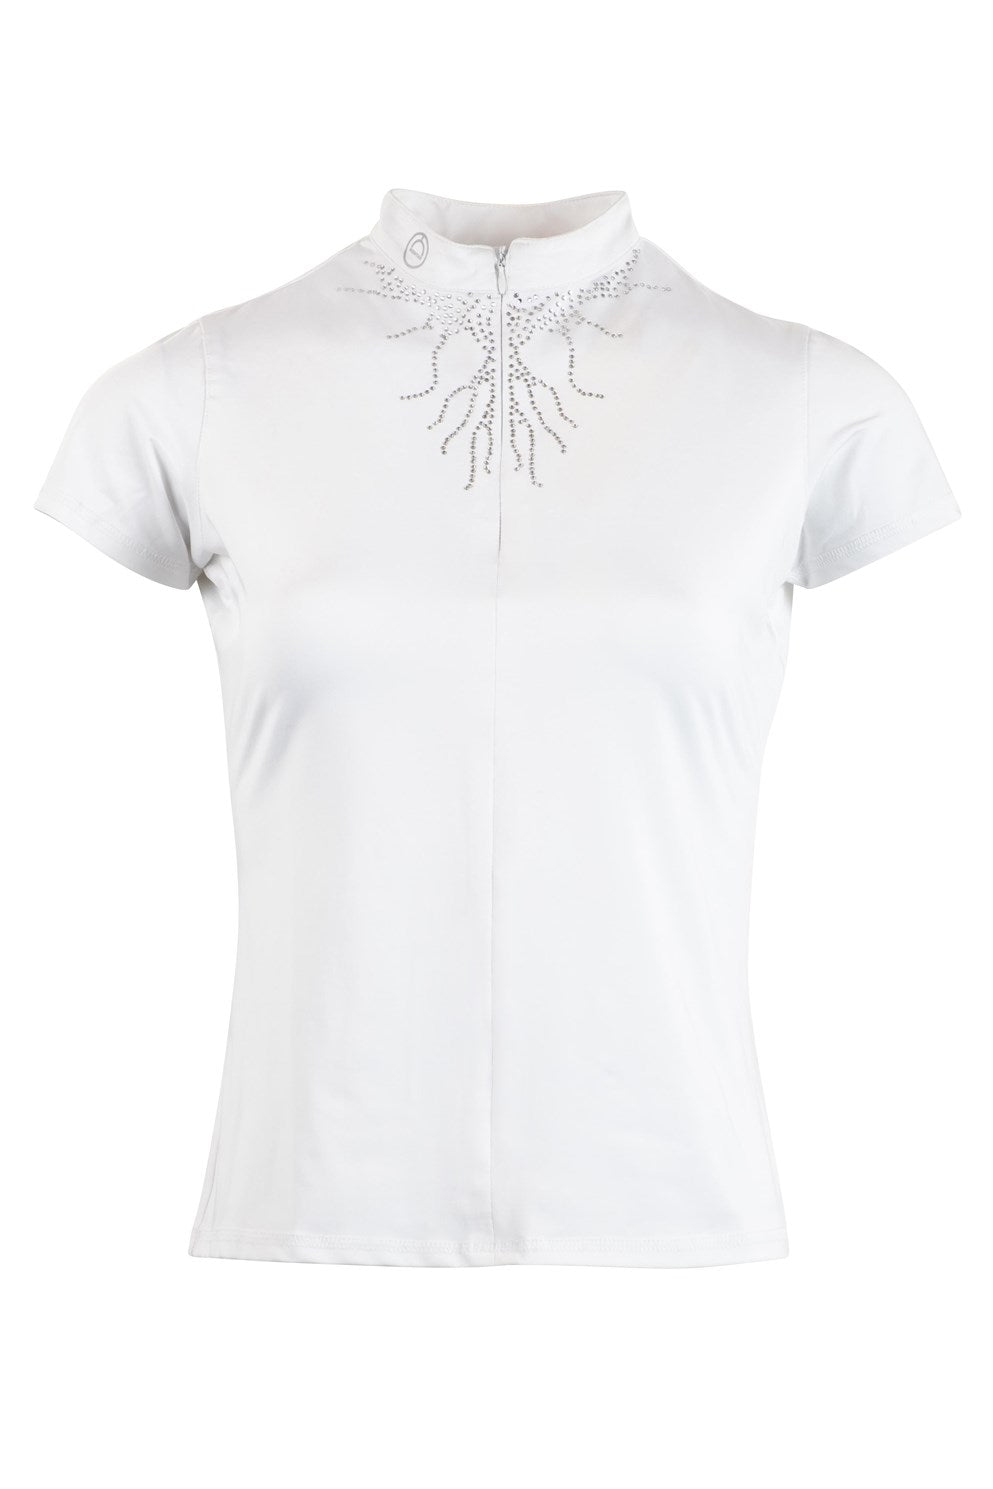 Juliana Competition Shirt Crystal Flames - White